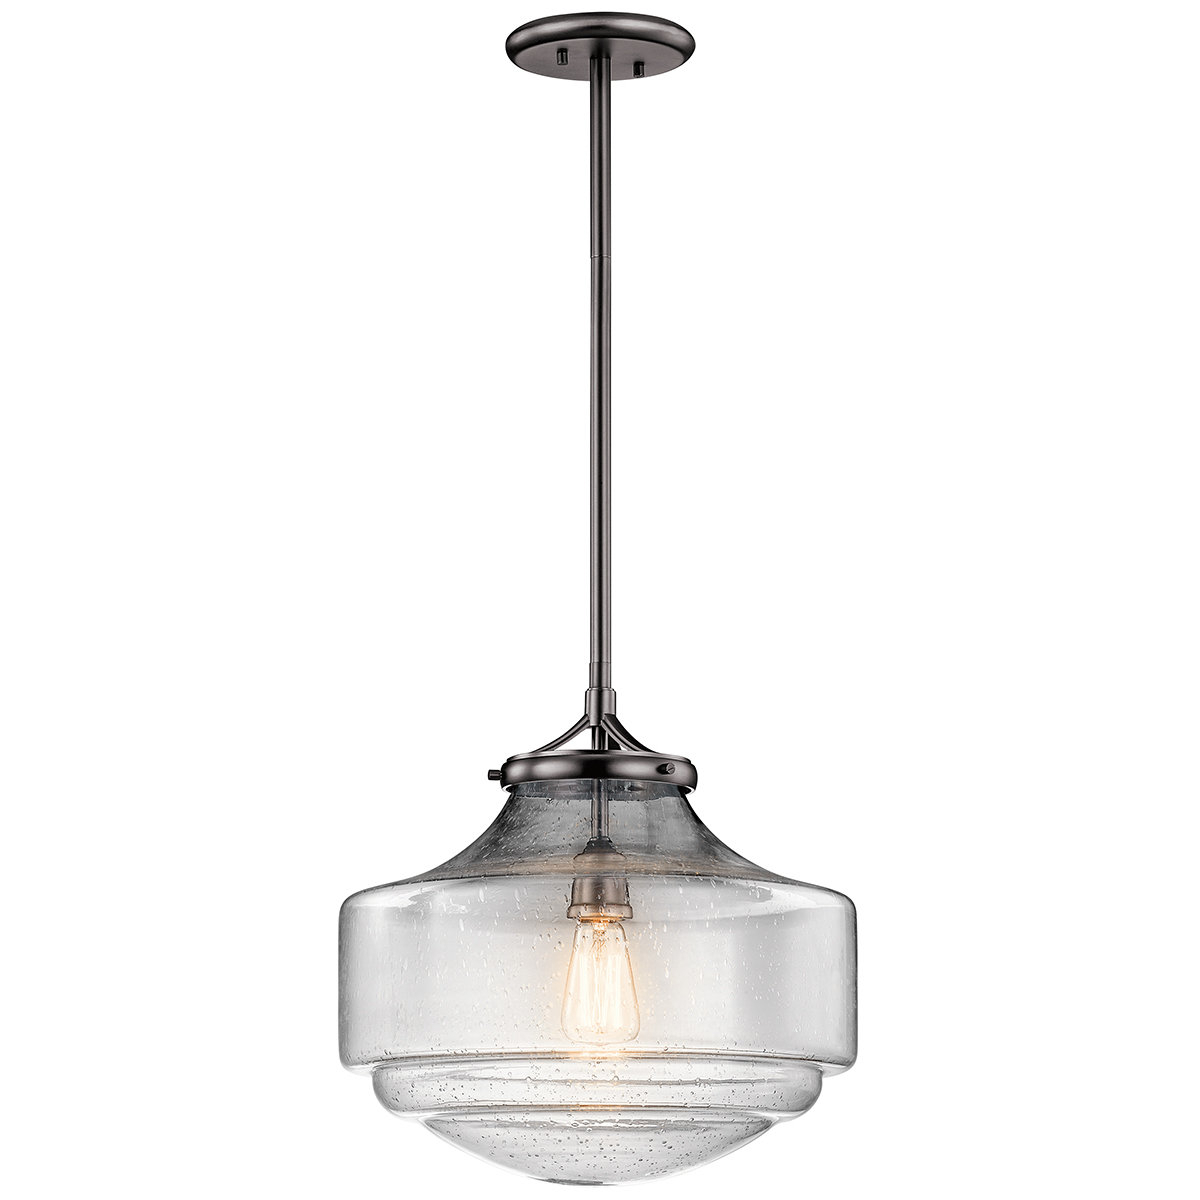 Marybeth 1-Light Schoolhouse Pendant in Mueller 1-Light Single Dome Pendants (Image 16 of 30)